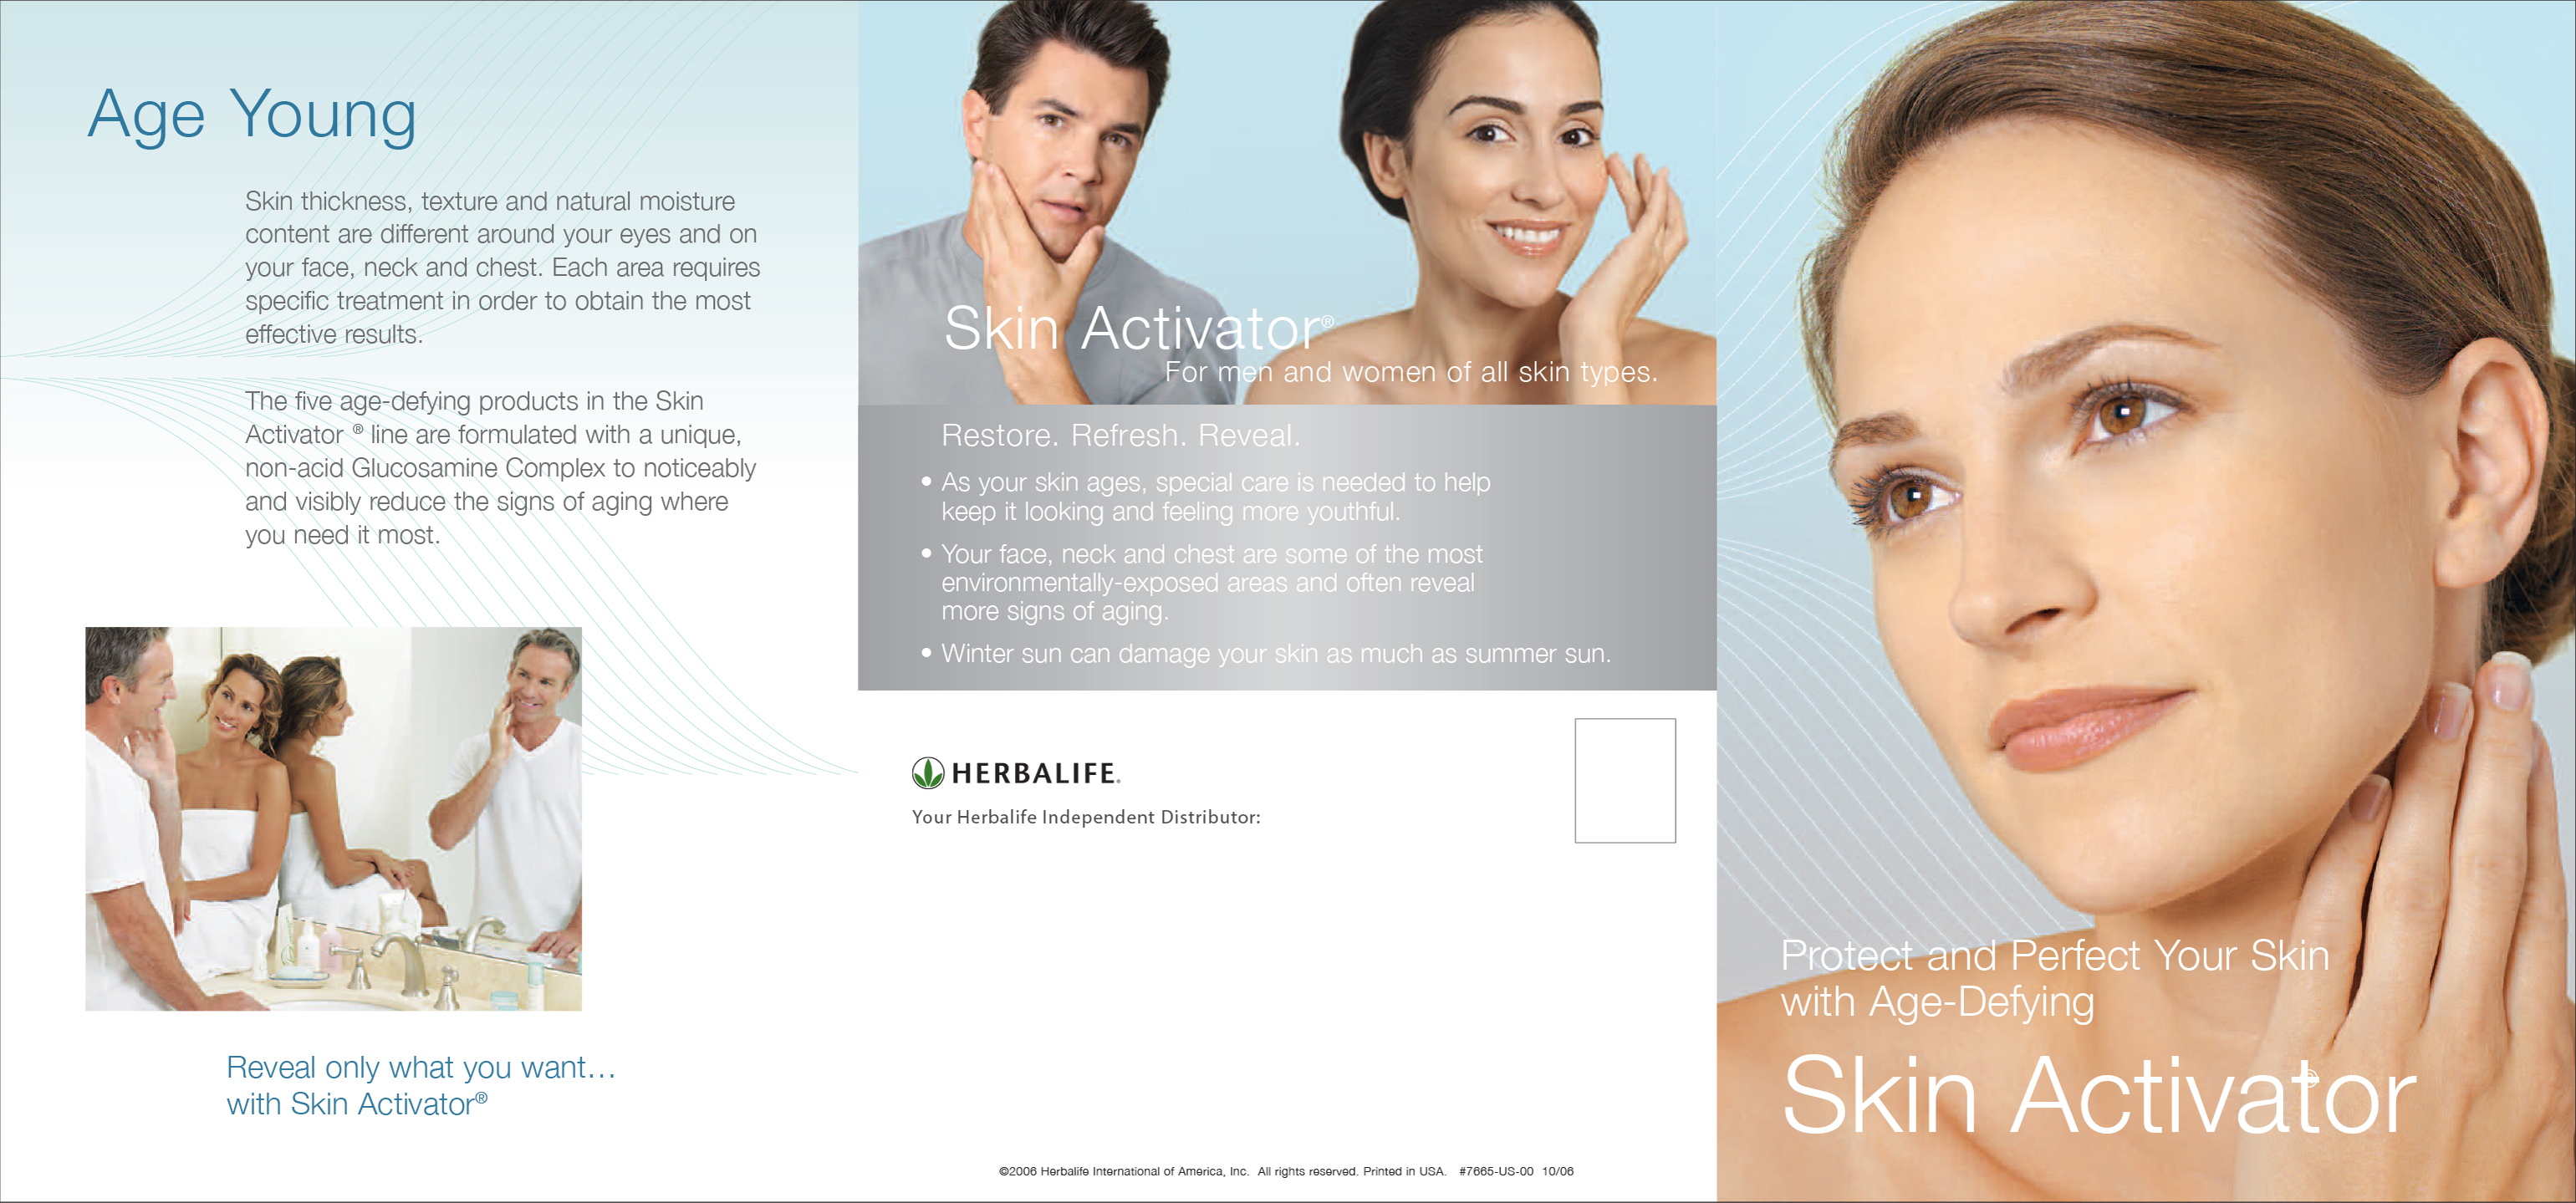 Care herbal life product skin - Care Herbal Life Product Skin 62